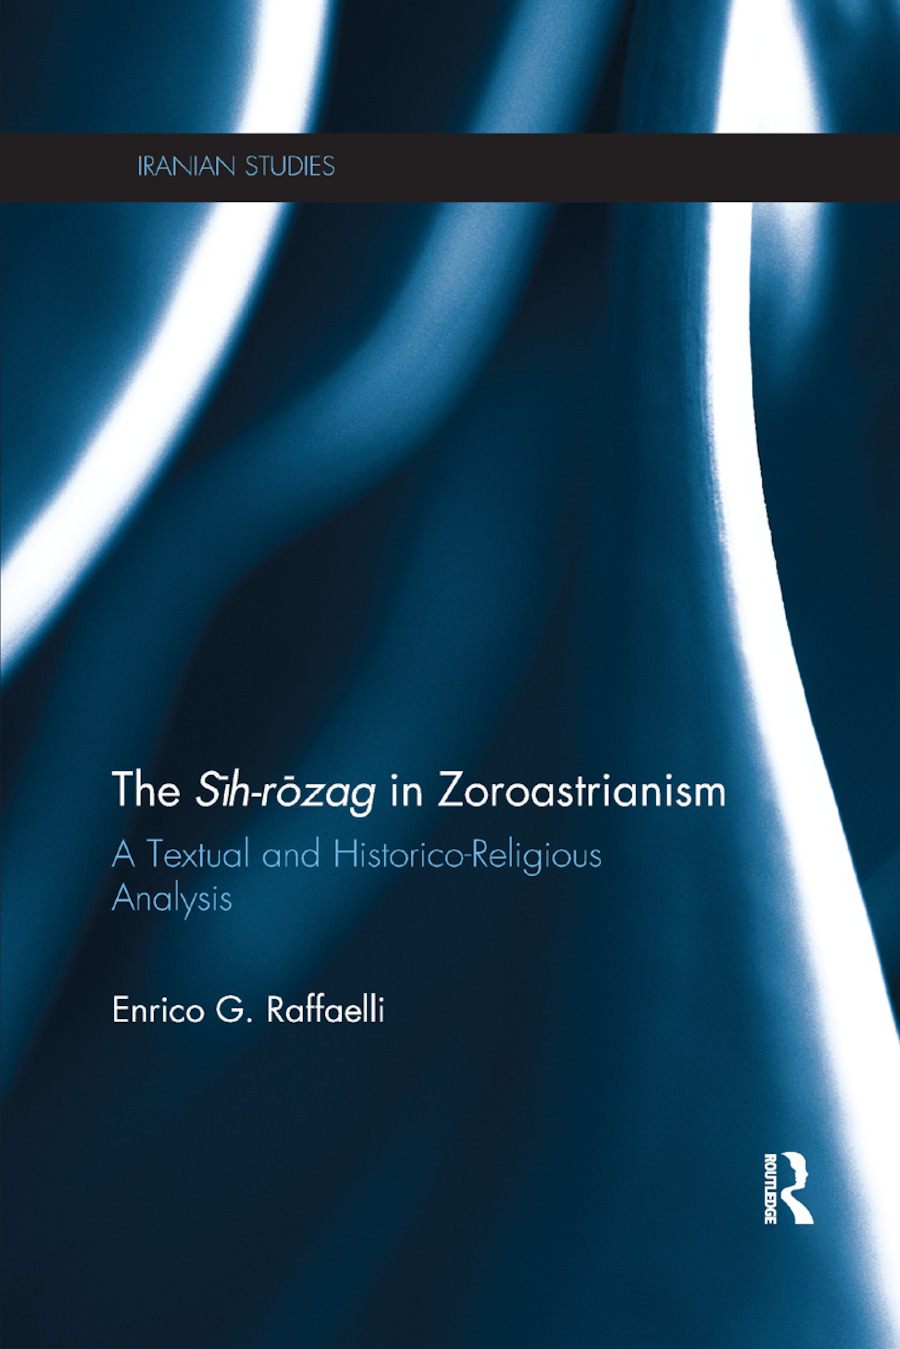 The Sih-Rozag in Zoroastrianism: A Textual and Historico-Religious Analysis book cover